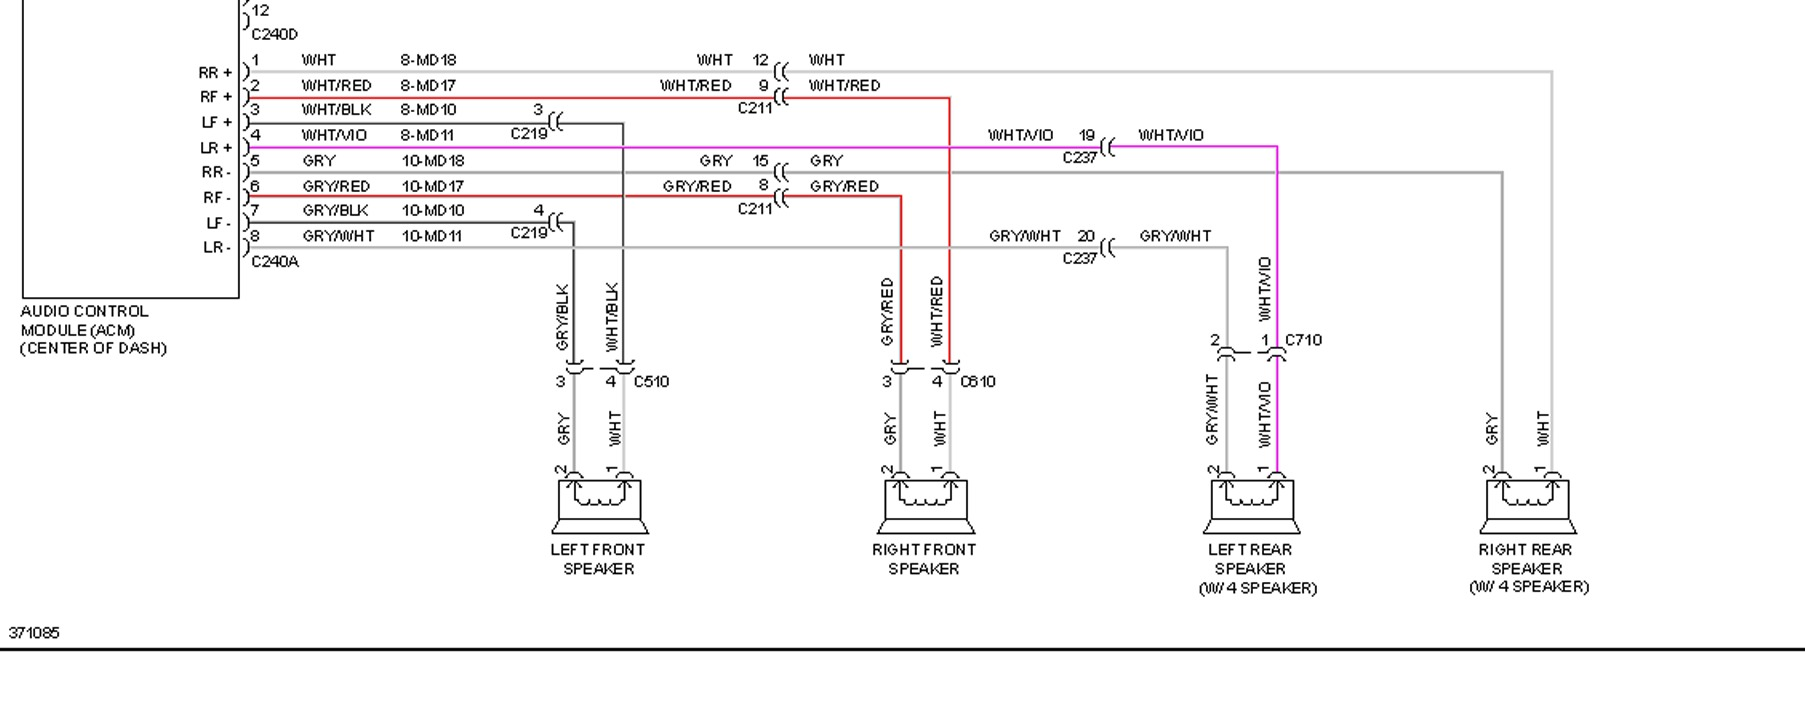 Bmw E46 Wiring Diagram Pdf furthermore Golf 4 Abs Wiring Diagram moreover Wiring Diagram Ford Transit Radio likewise RepairGuideContent additionally Wiring Diagram Track Lighting. on bmw e46 radio wiring diagram